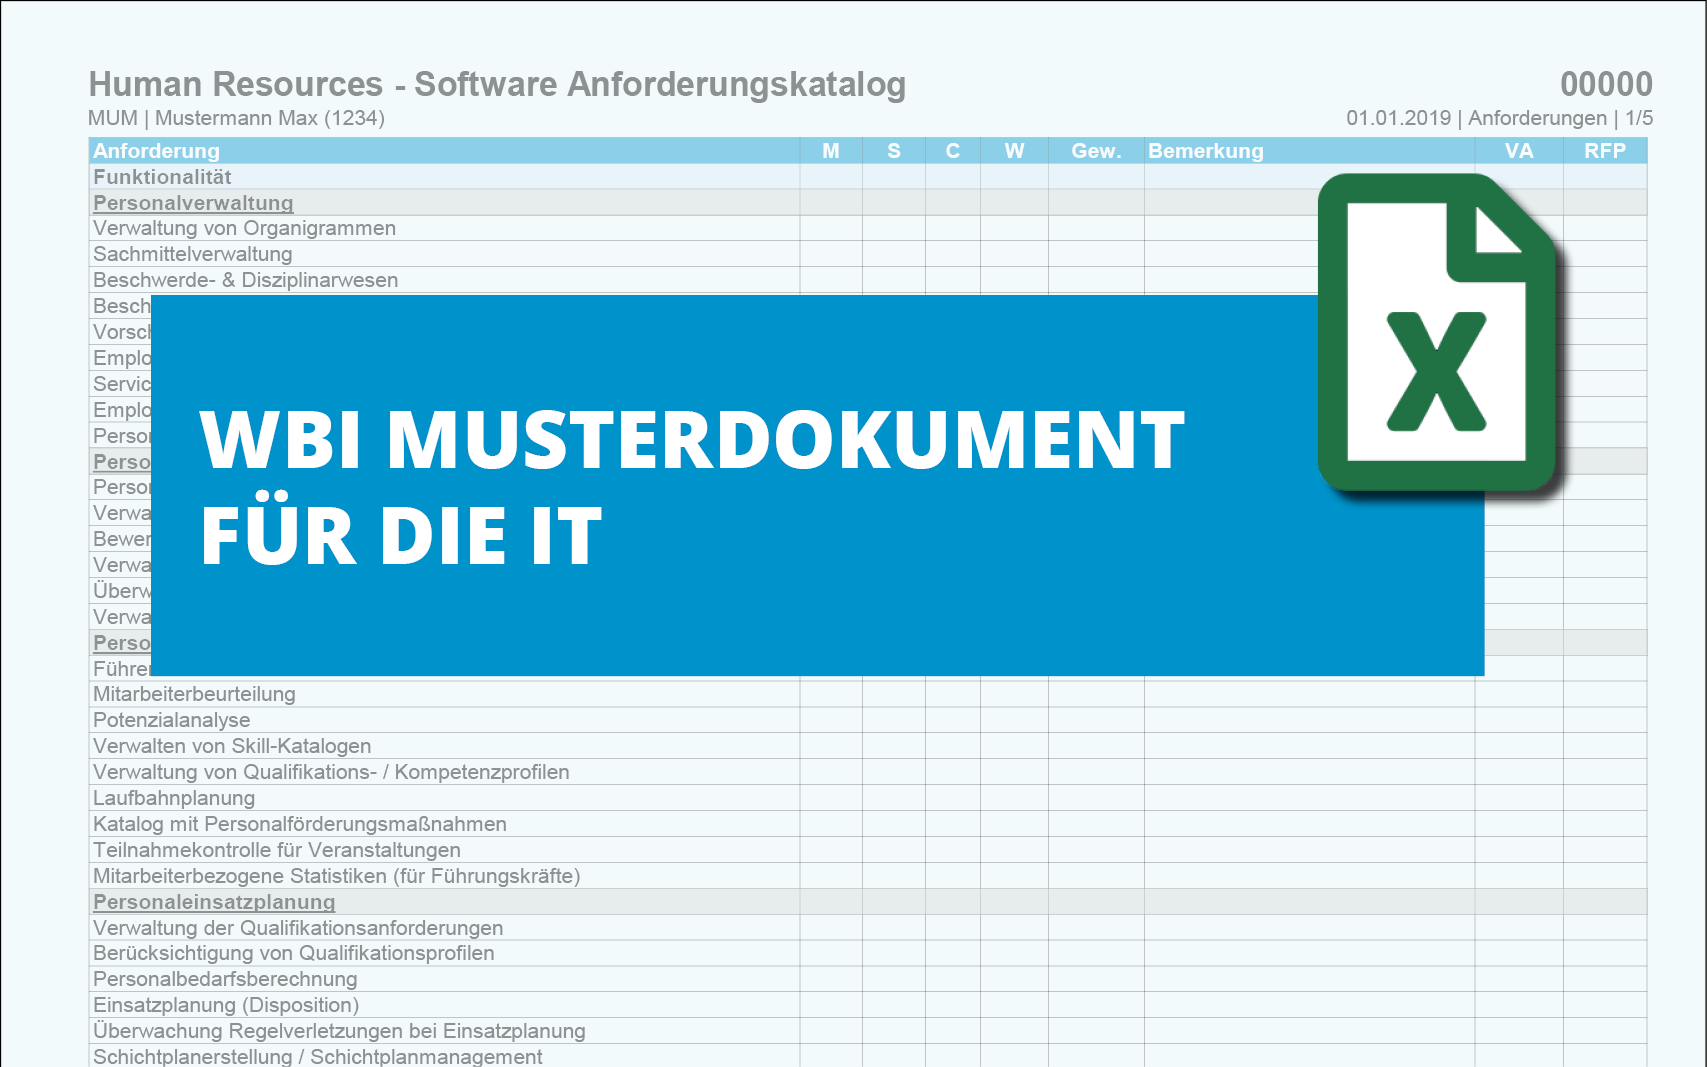 human-resources-software-anforderungskatalog